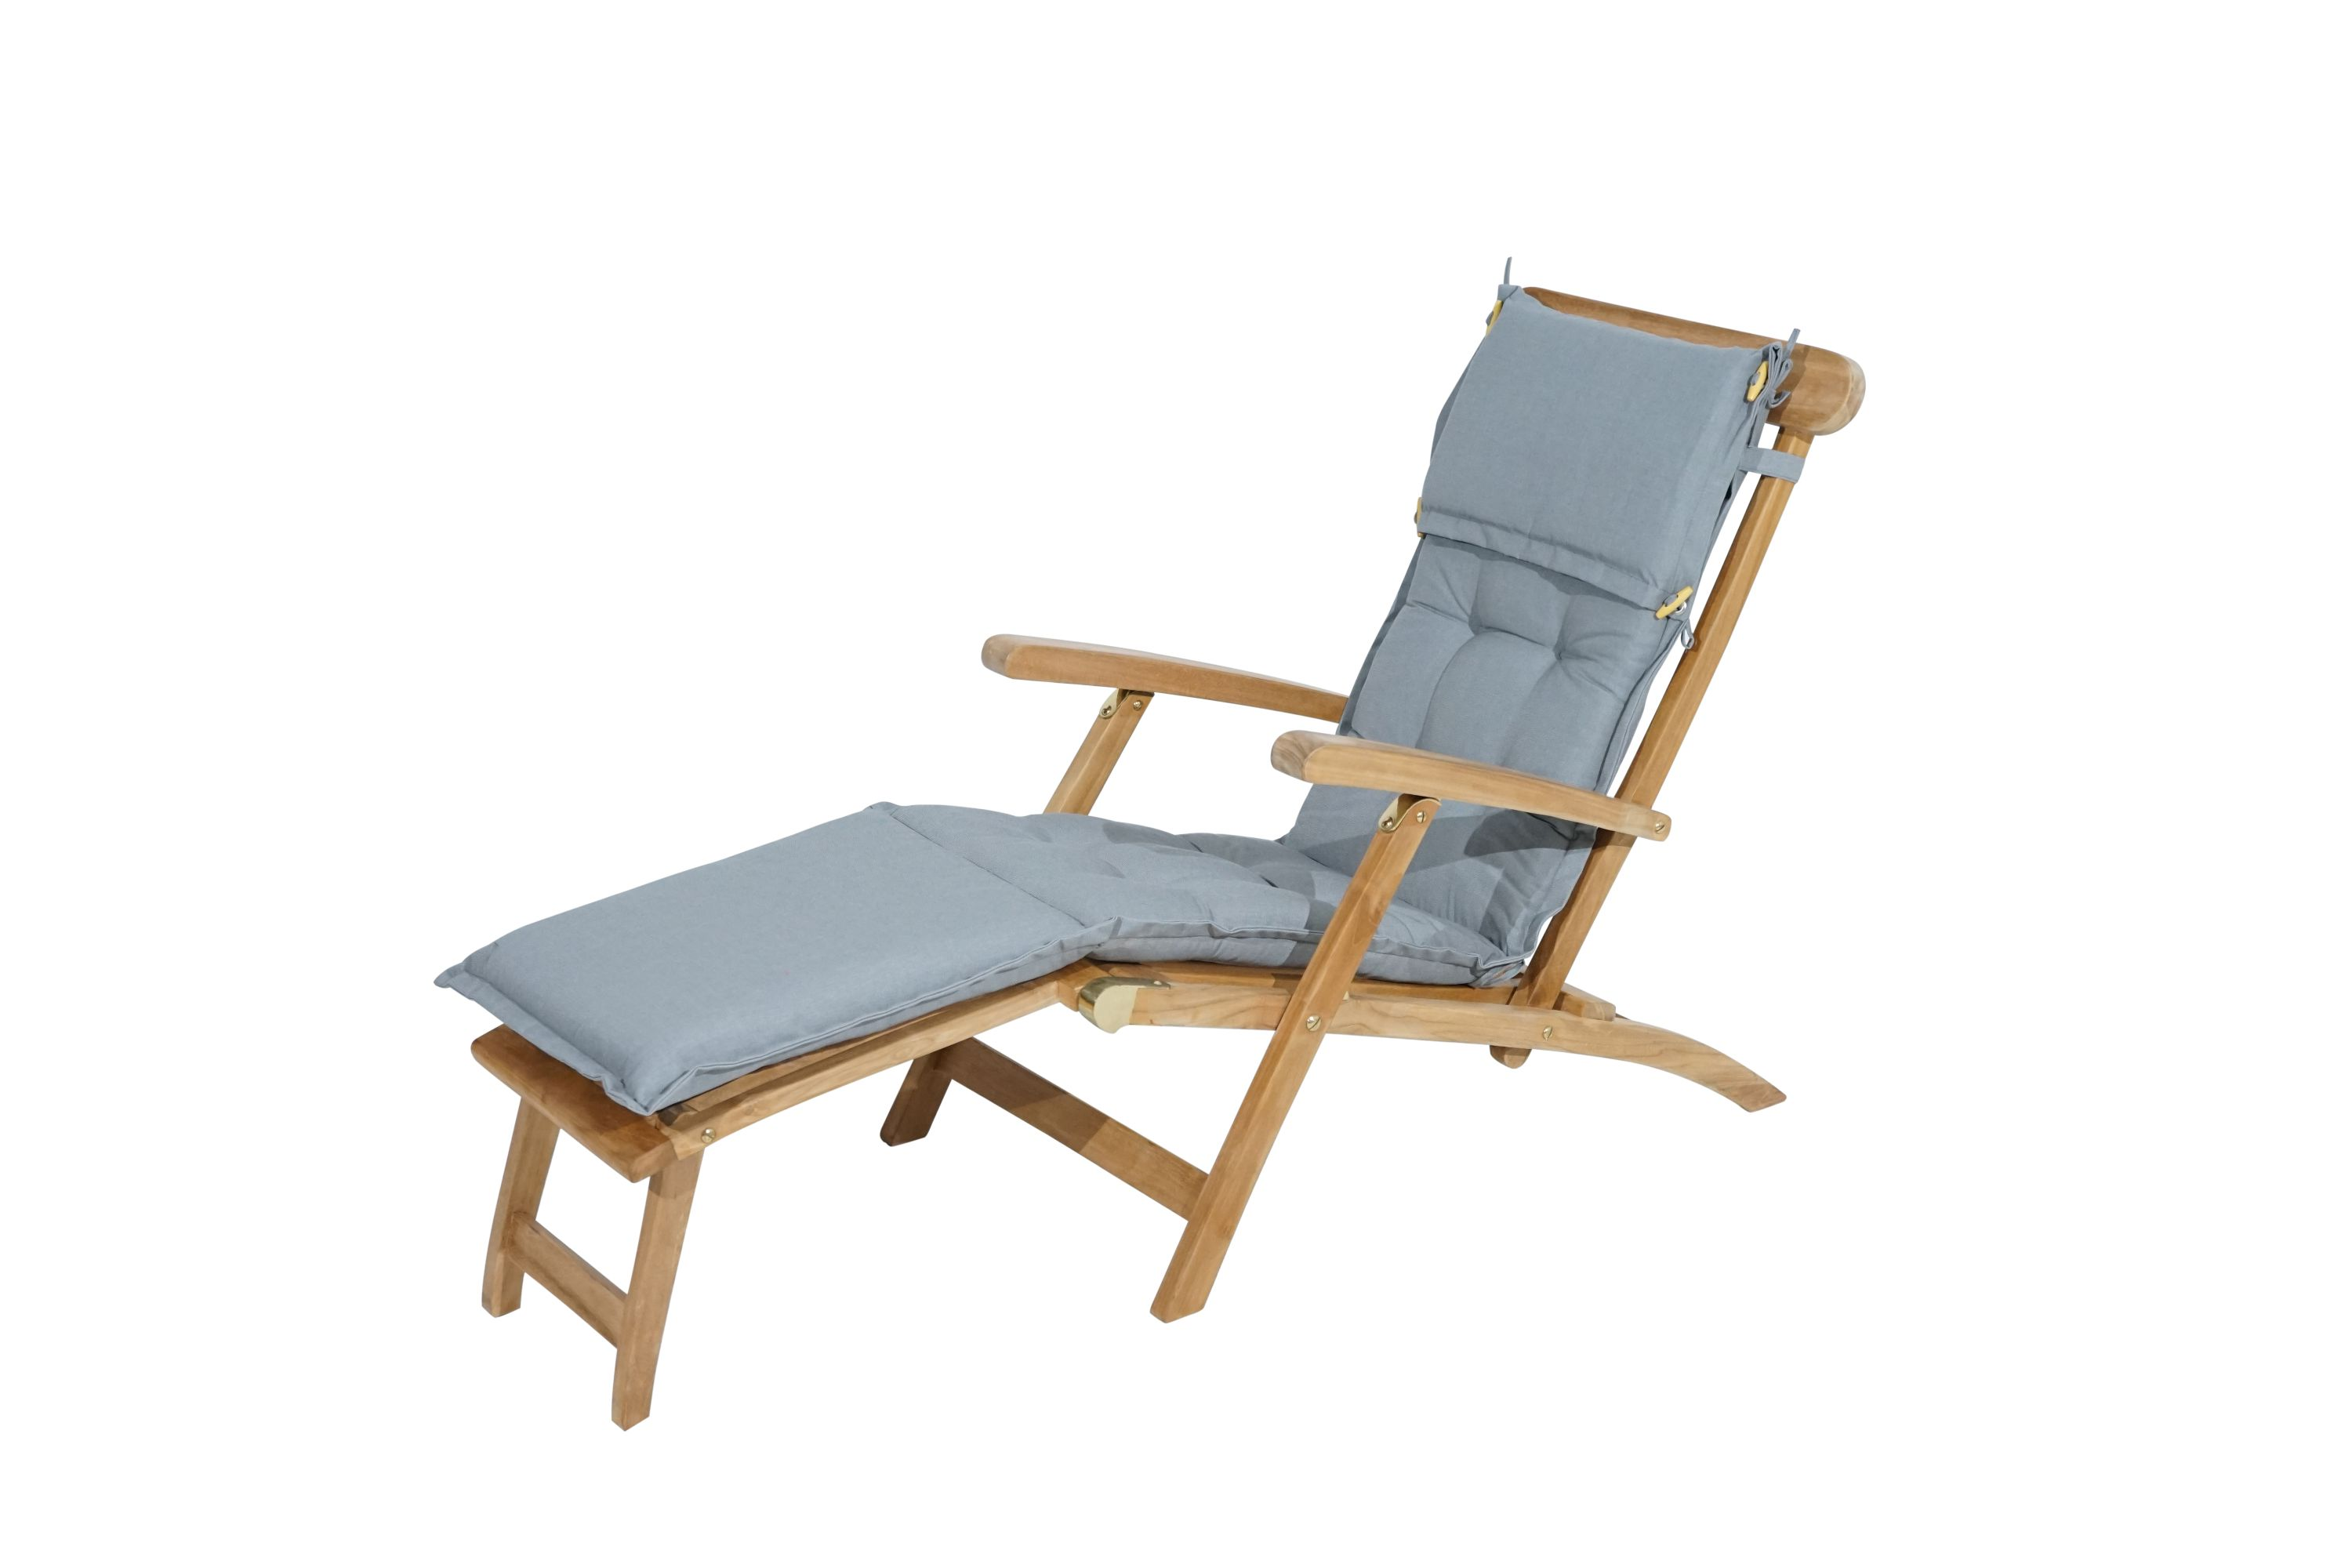 polster f r deckchairs polster auflagen ihr online shop f r hochwertige. Black Bedroom Furniture Sets. Home Design Ideas